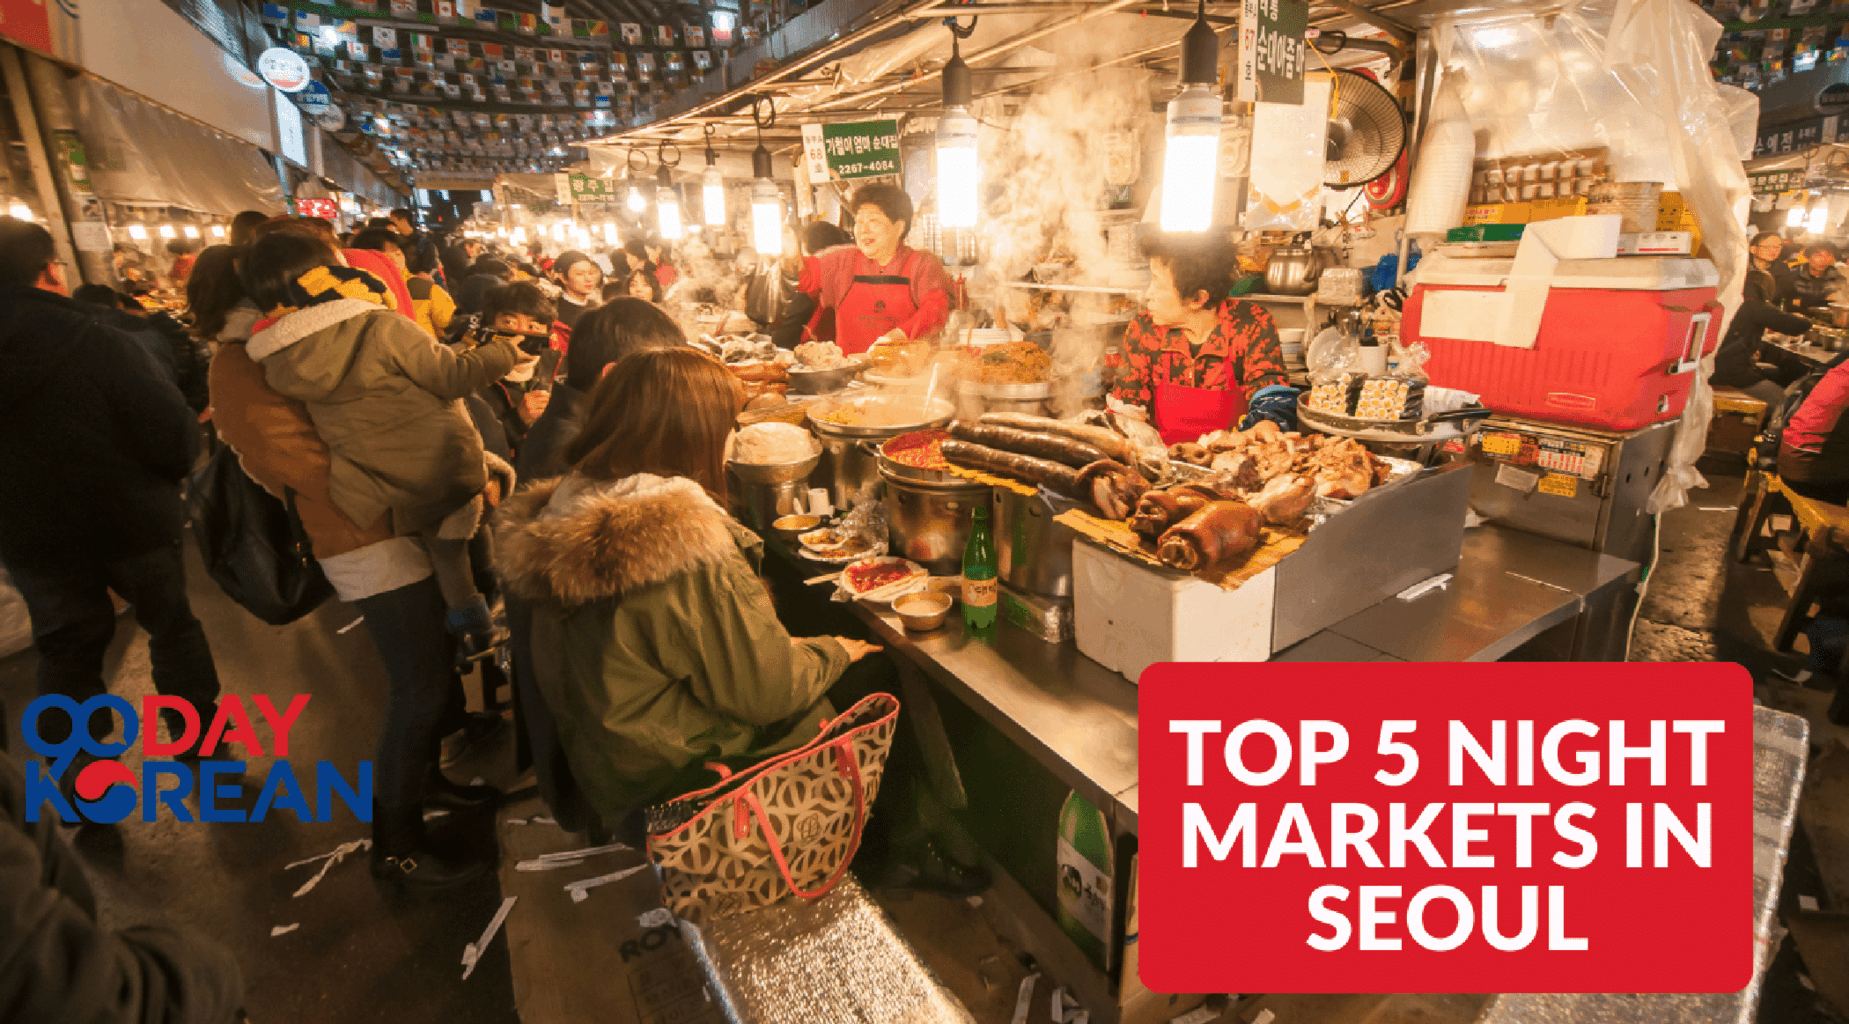 Top 5 Night Markets In Seoul